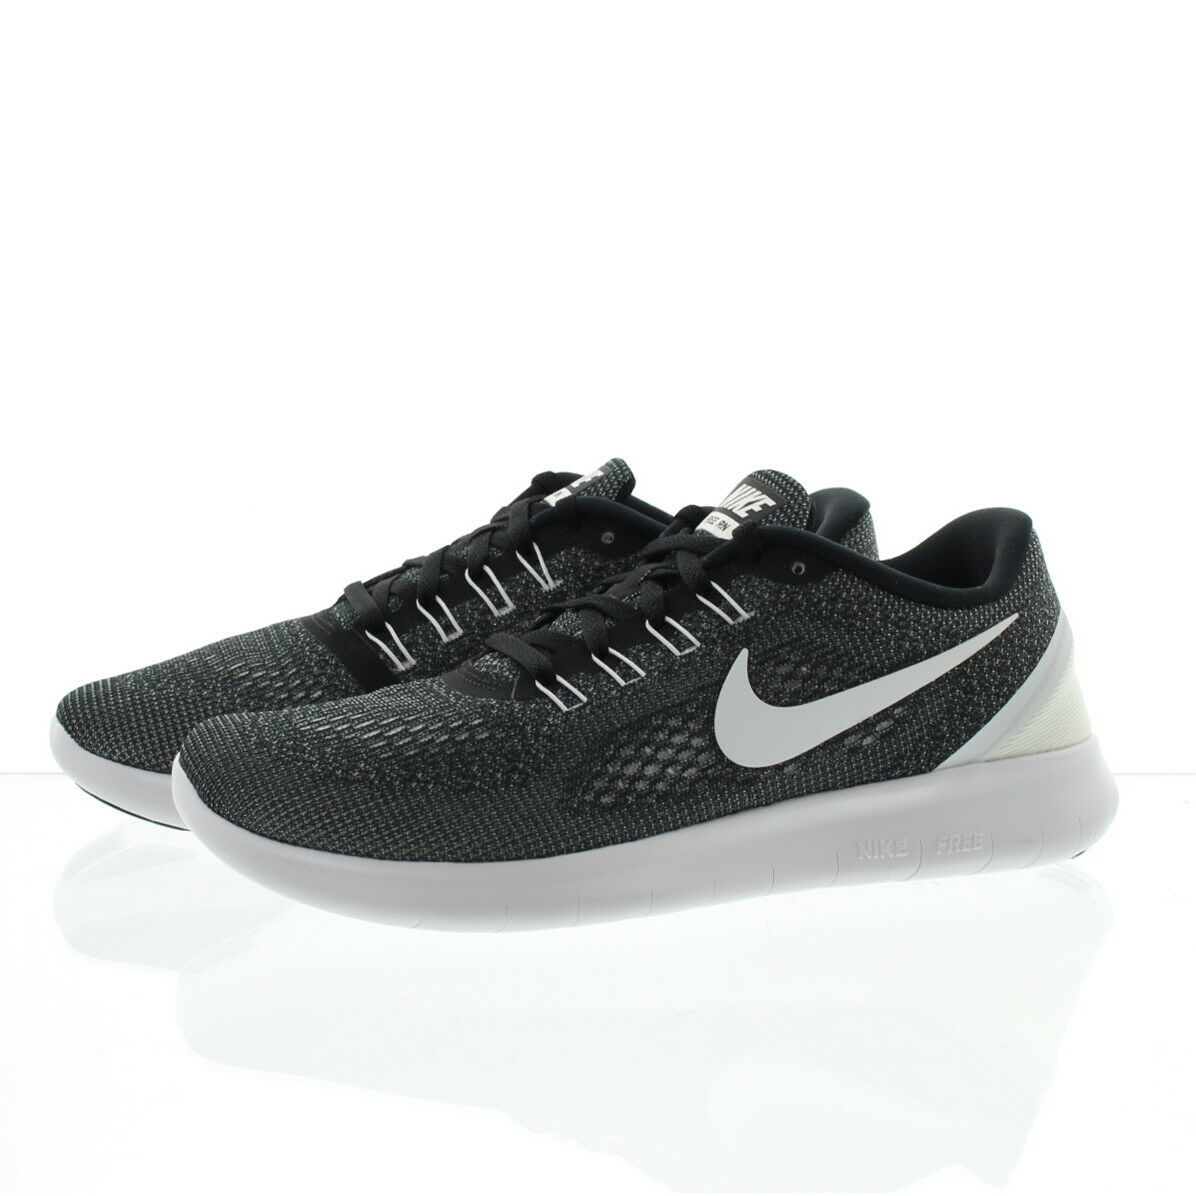 Nike 889121 Mens Free Run Low Top Running Training Athletic shoes Sneakers